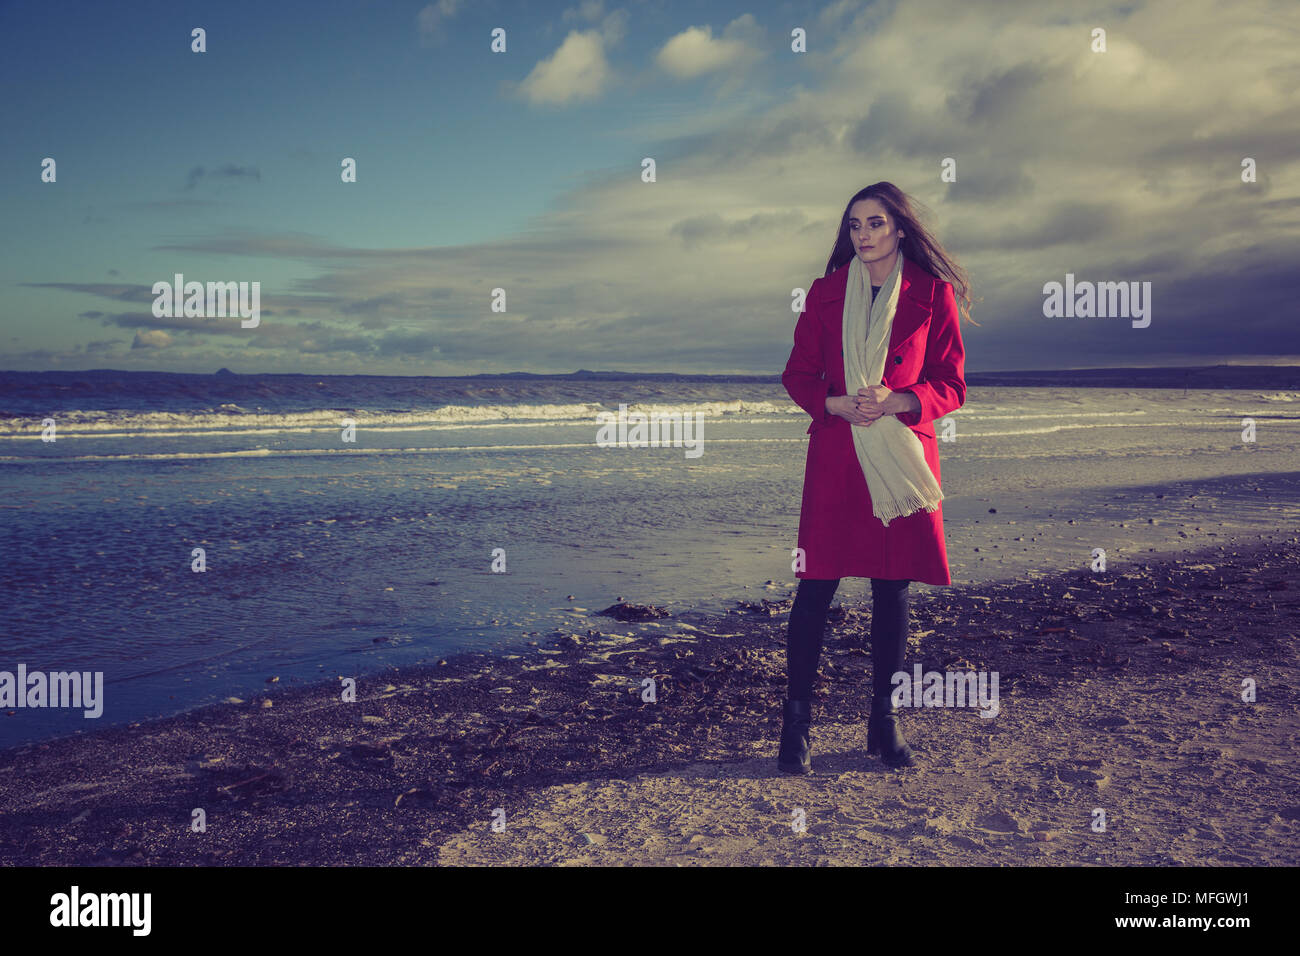 Woman in red jacket on a beach. - Stock Image